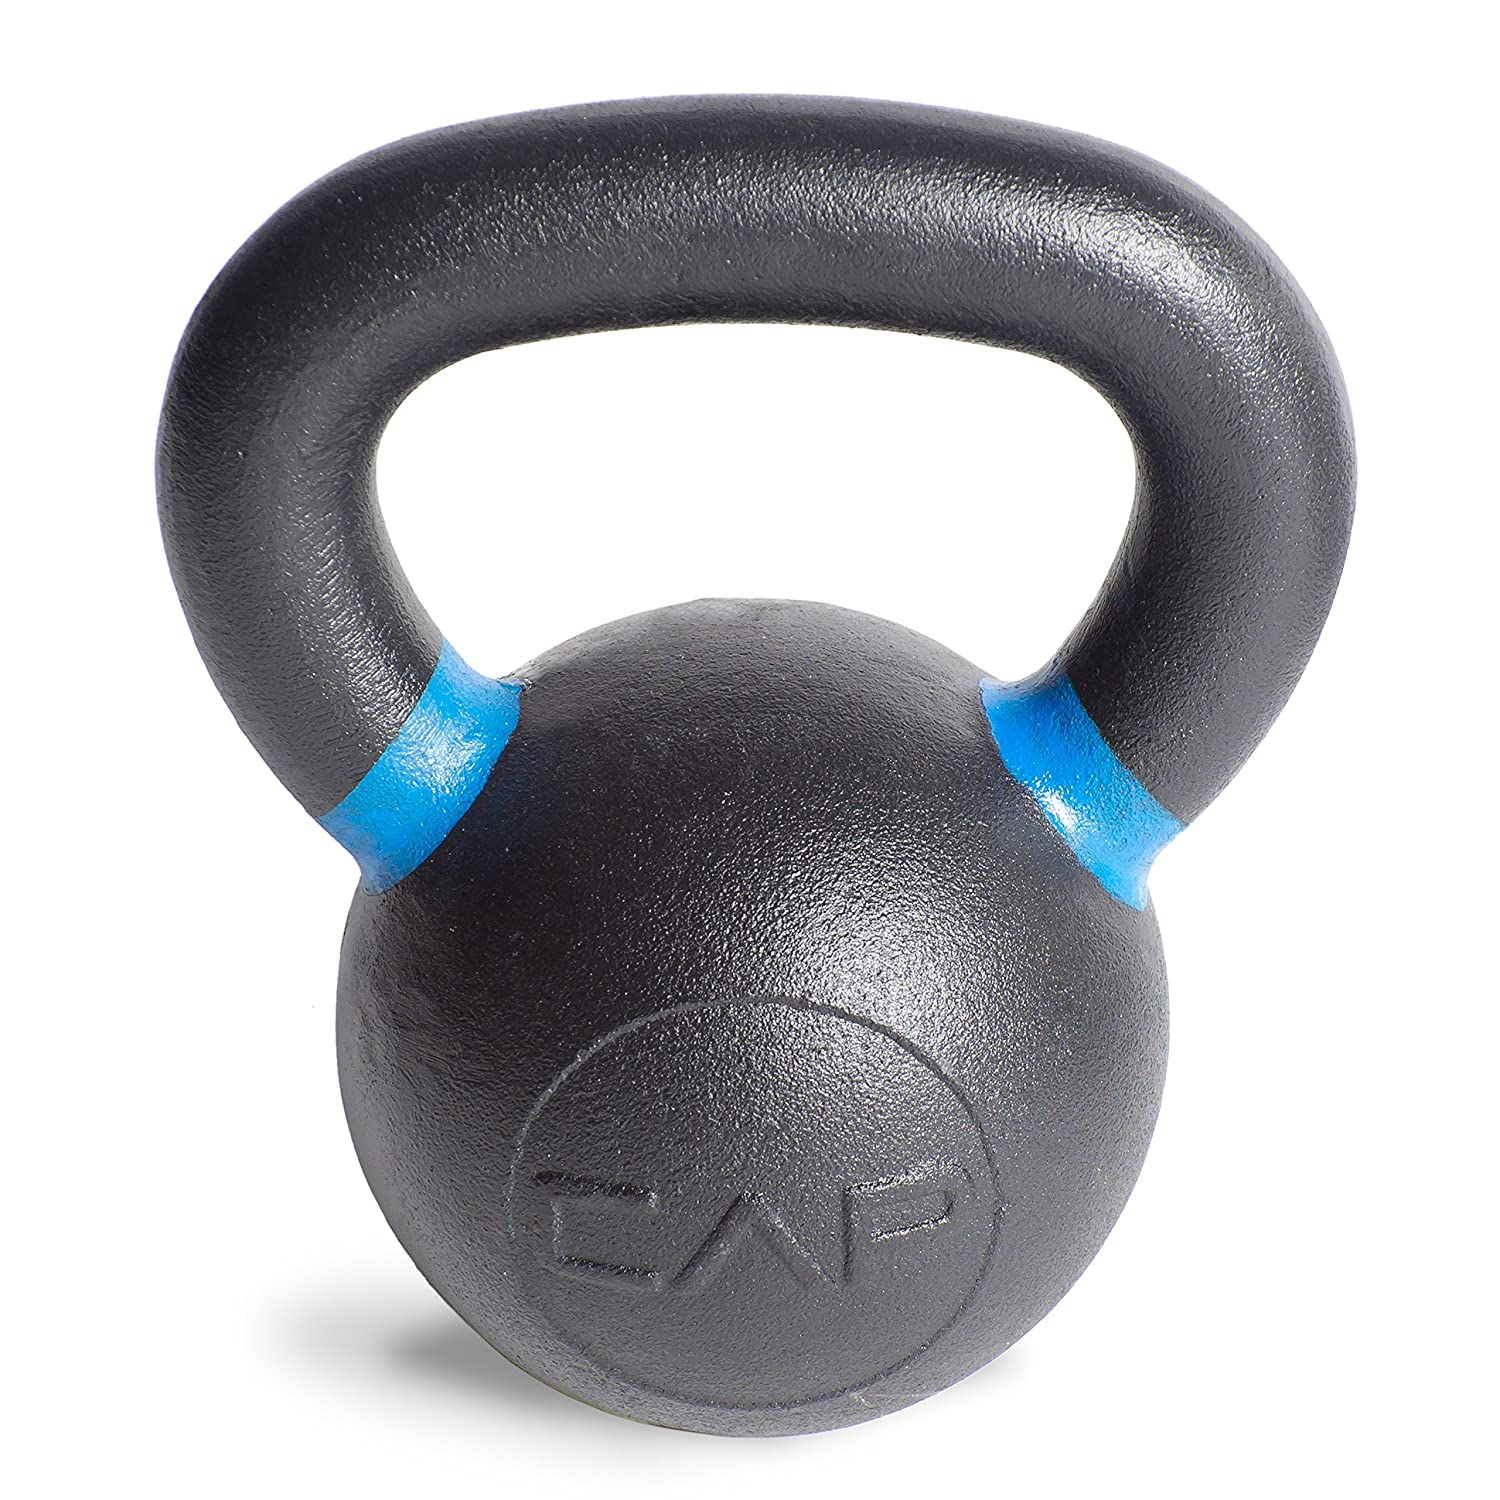 CAP Barbell Cast Iron Competition Weight Kettlebell, 26-Pound, Black/Blue SDK5-026